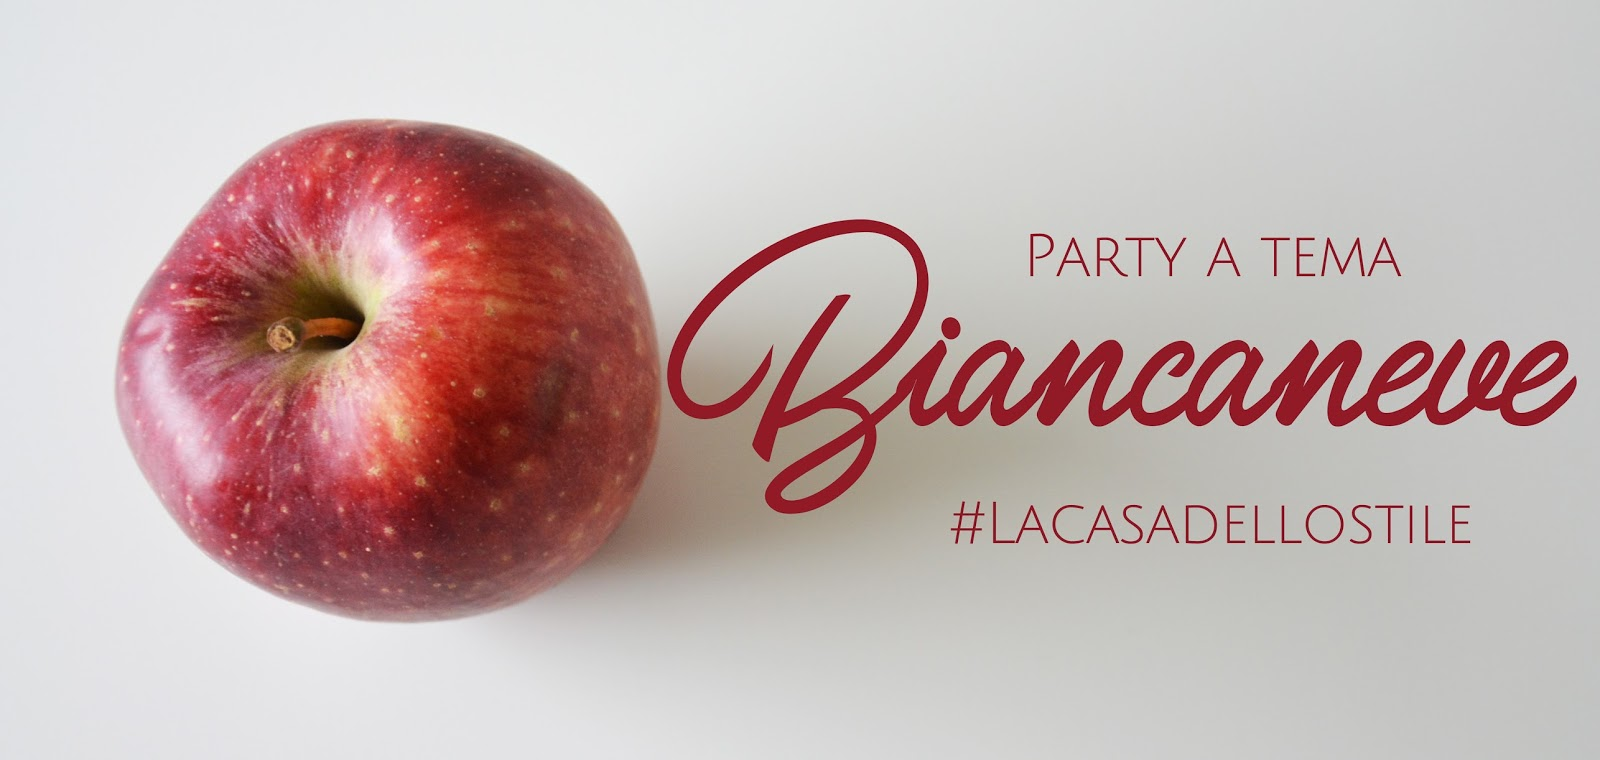 Party a tema Biancaneve